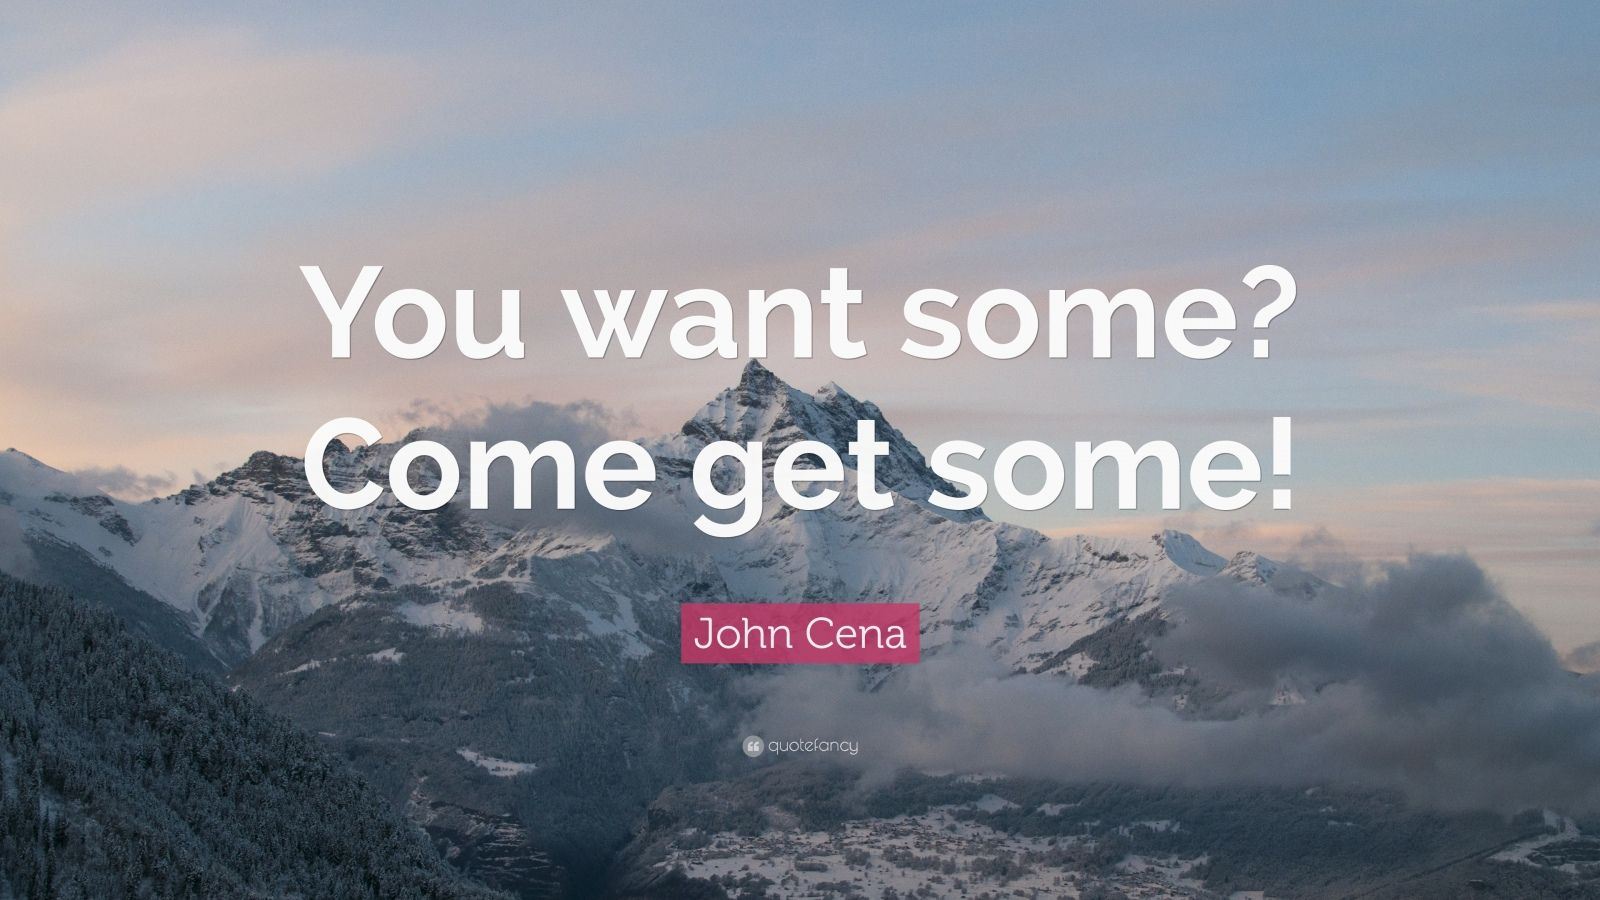 Steve Jobs Motivational Quotes Wallpaper John Cena Quote You Want Some Come Get Some 12